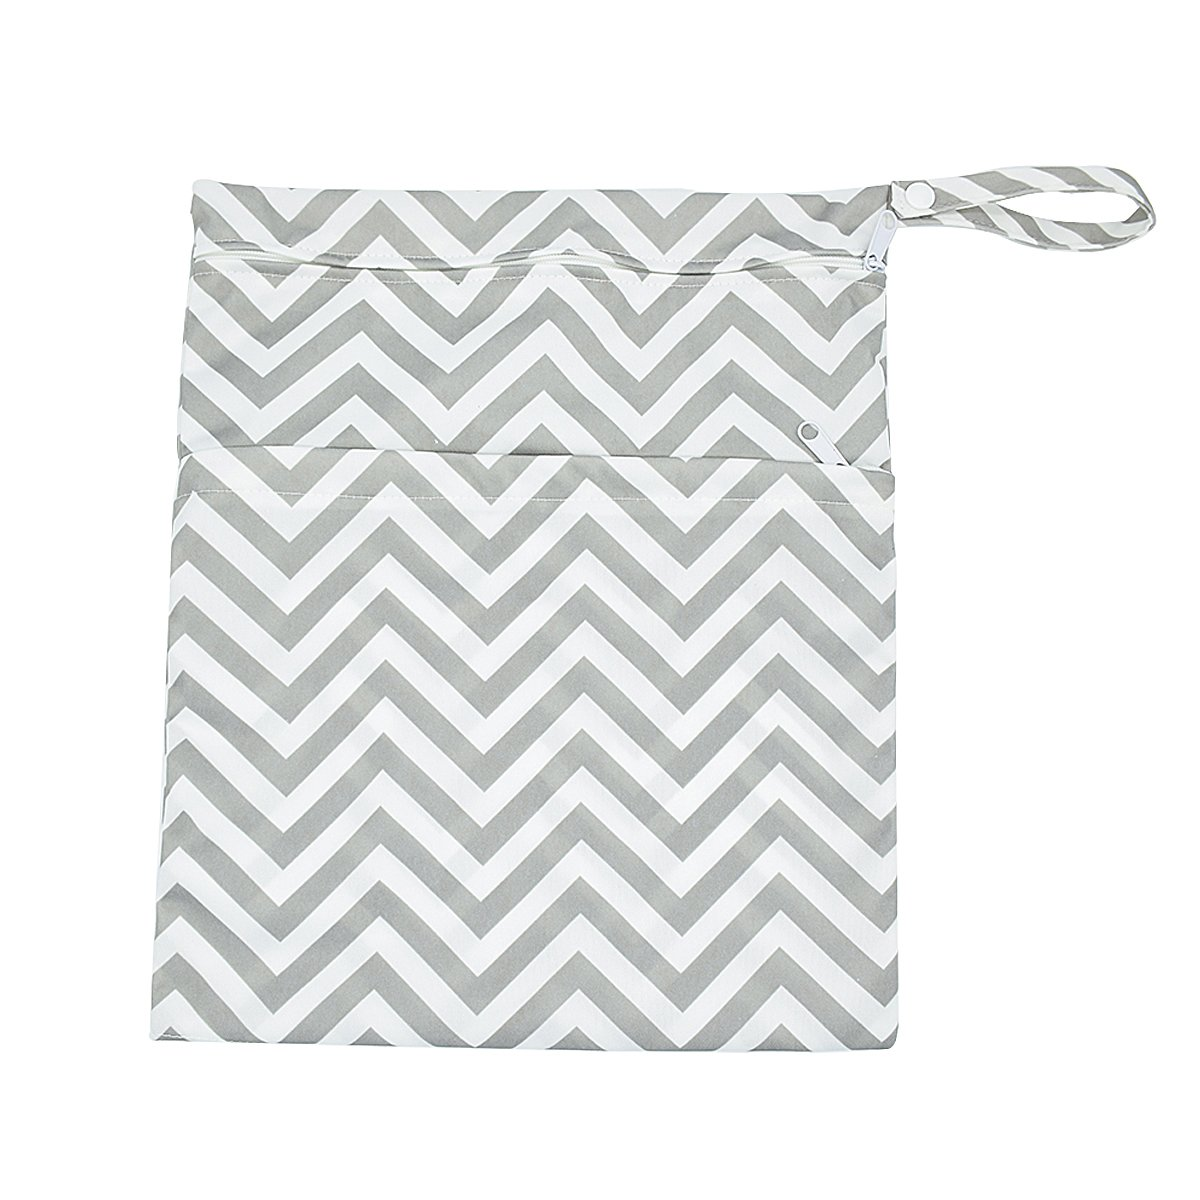 Blue Chevron and Spindrift Baby Wet Bag Dry Bag Splice Cloth Diaper Wet Bags Waterproof Small Size with Zipper Snap Handle Pack of 2